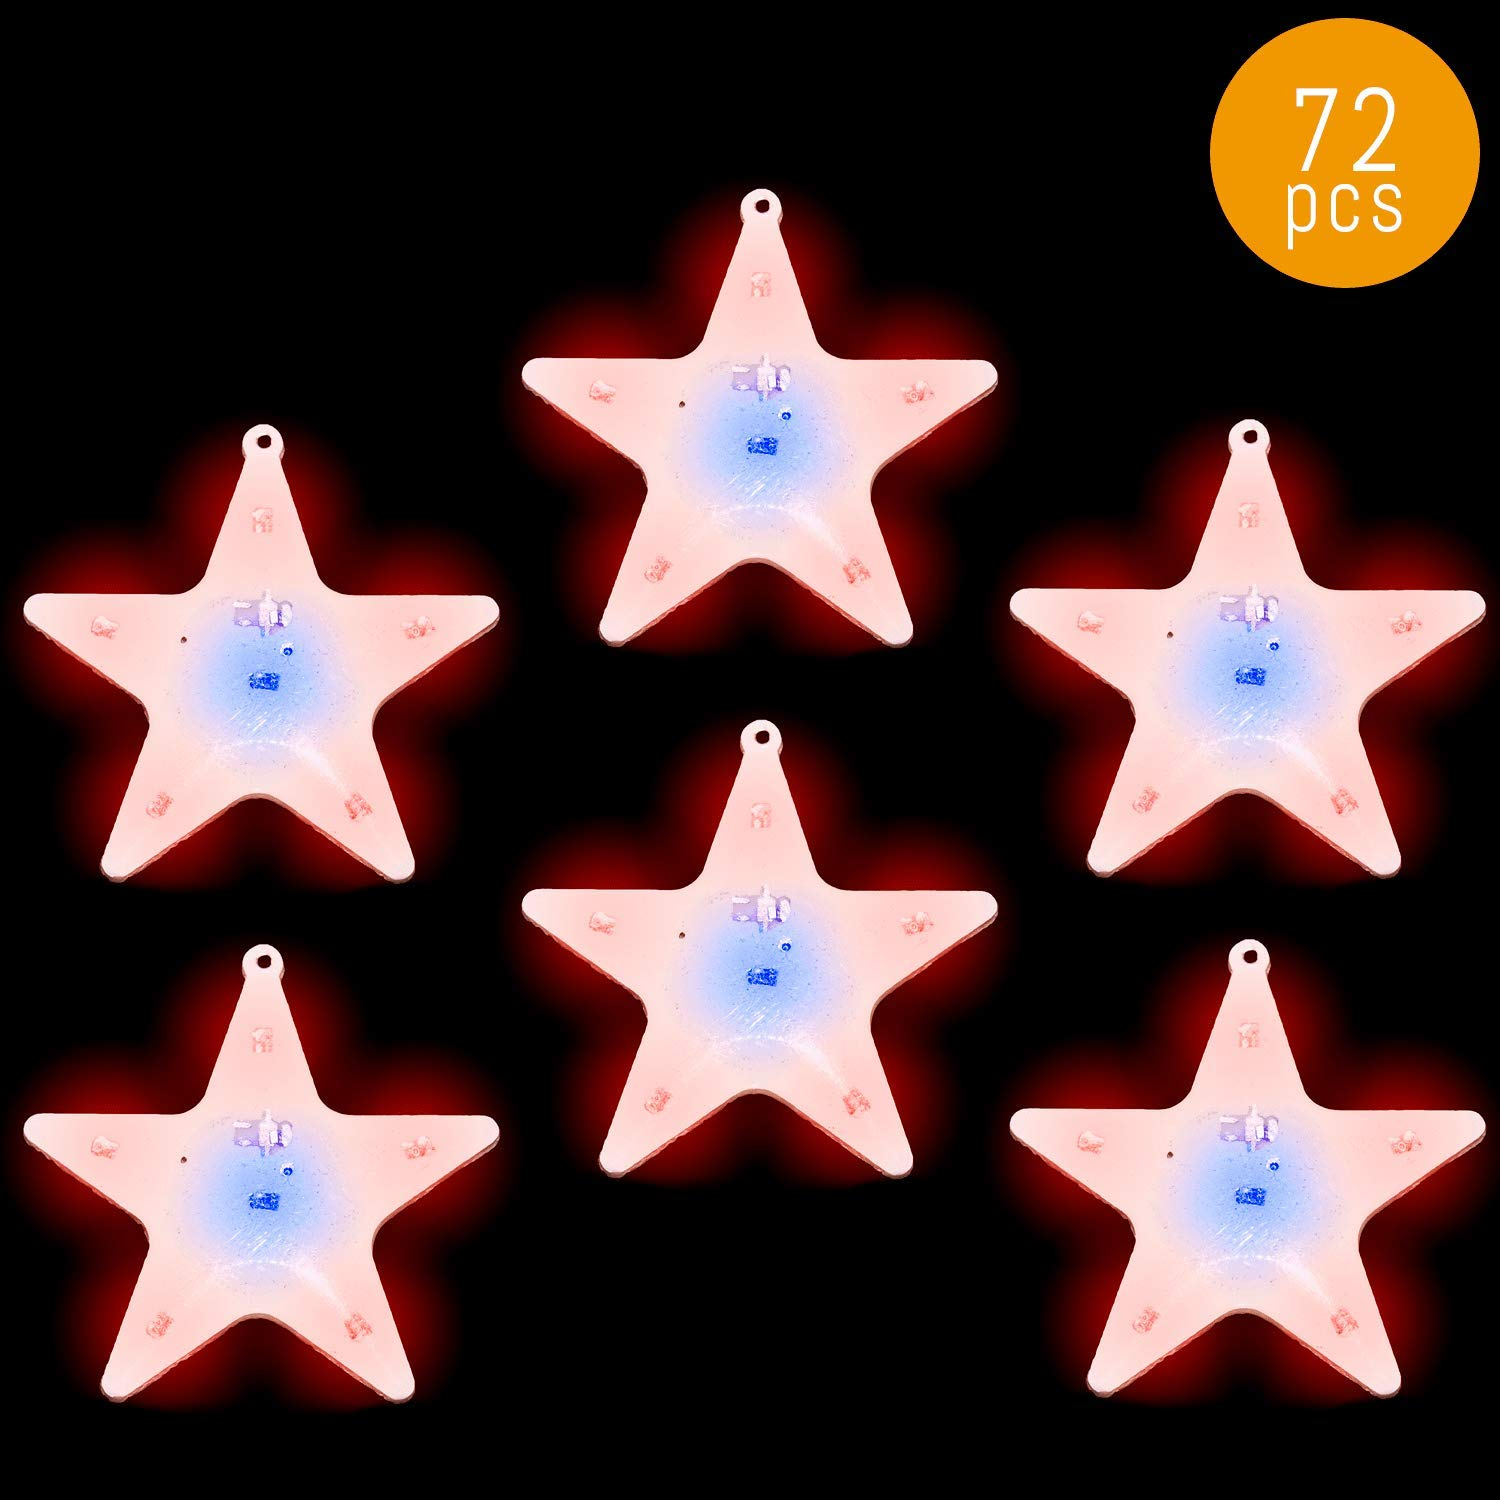 Lumistick LED Blinky Twinkle Star Magnet Pin | Ultra Bright Glowing Starry Brooch | Luminous Light Up Sparkling Badge Party Favors Accessory (72 Pins)